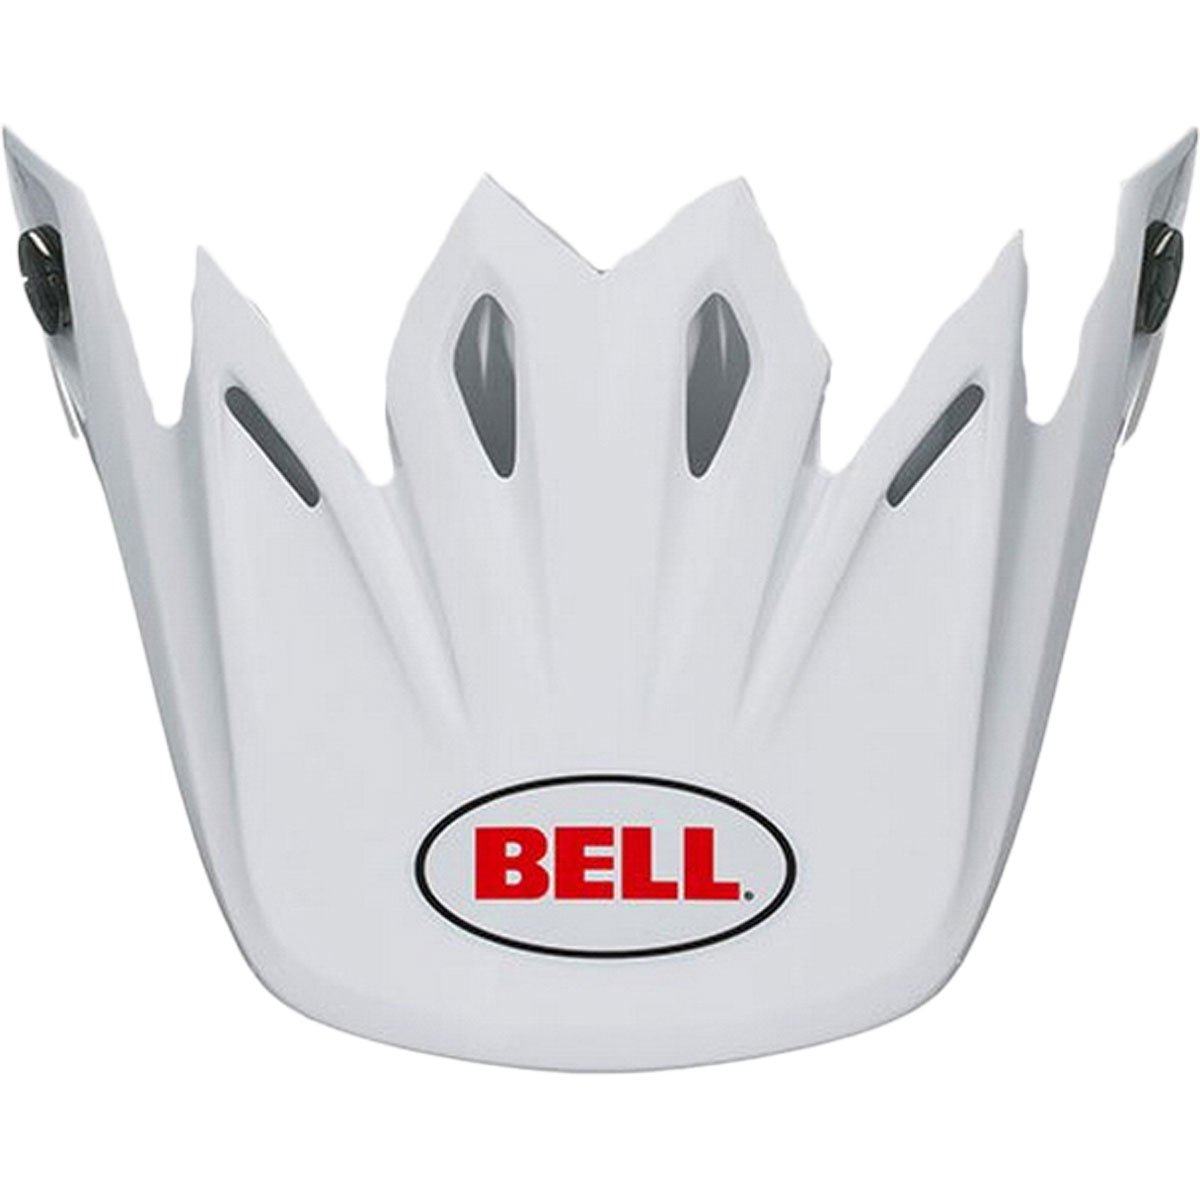 Bell Moto-9 Solid Visor Street Motorcycle Helmet Accessories - White/One Size